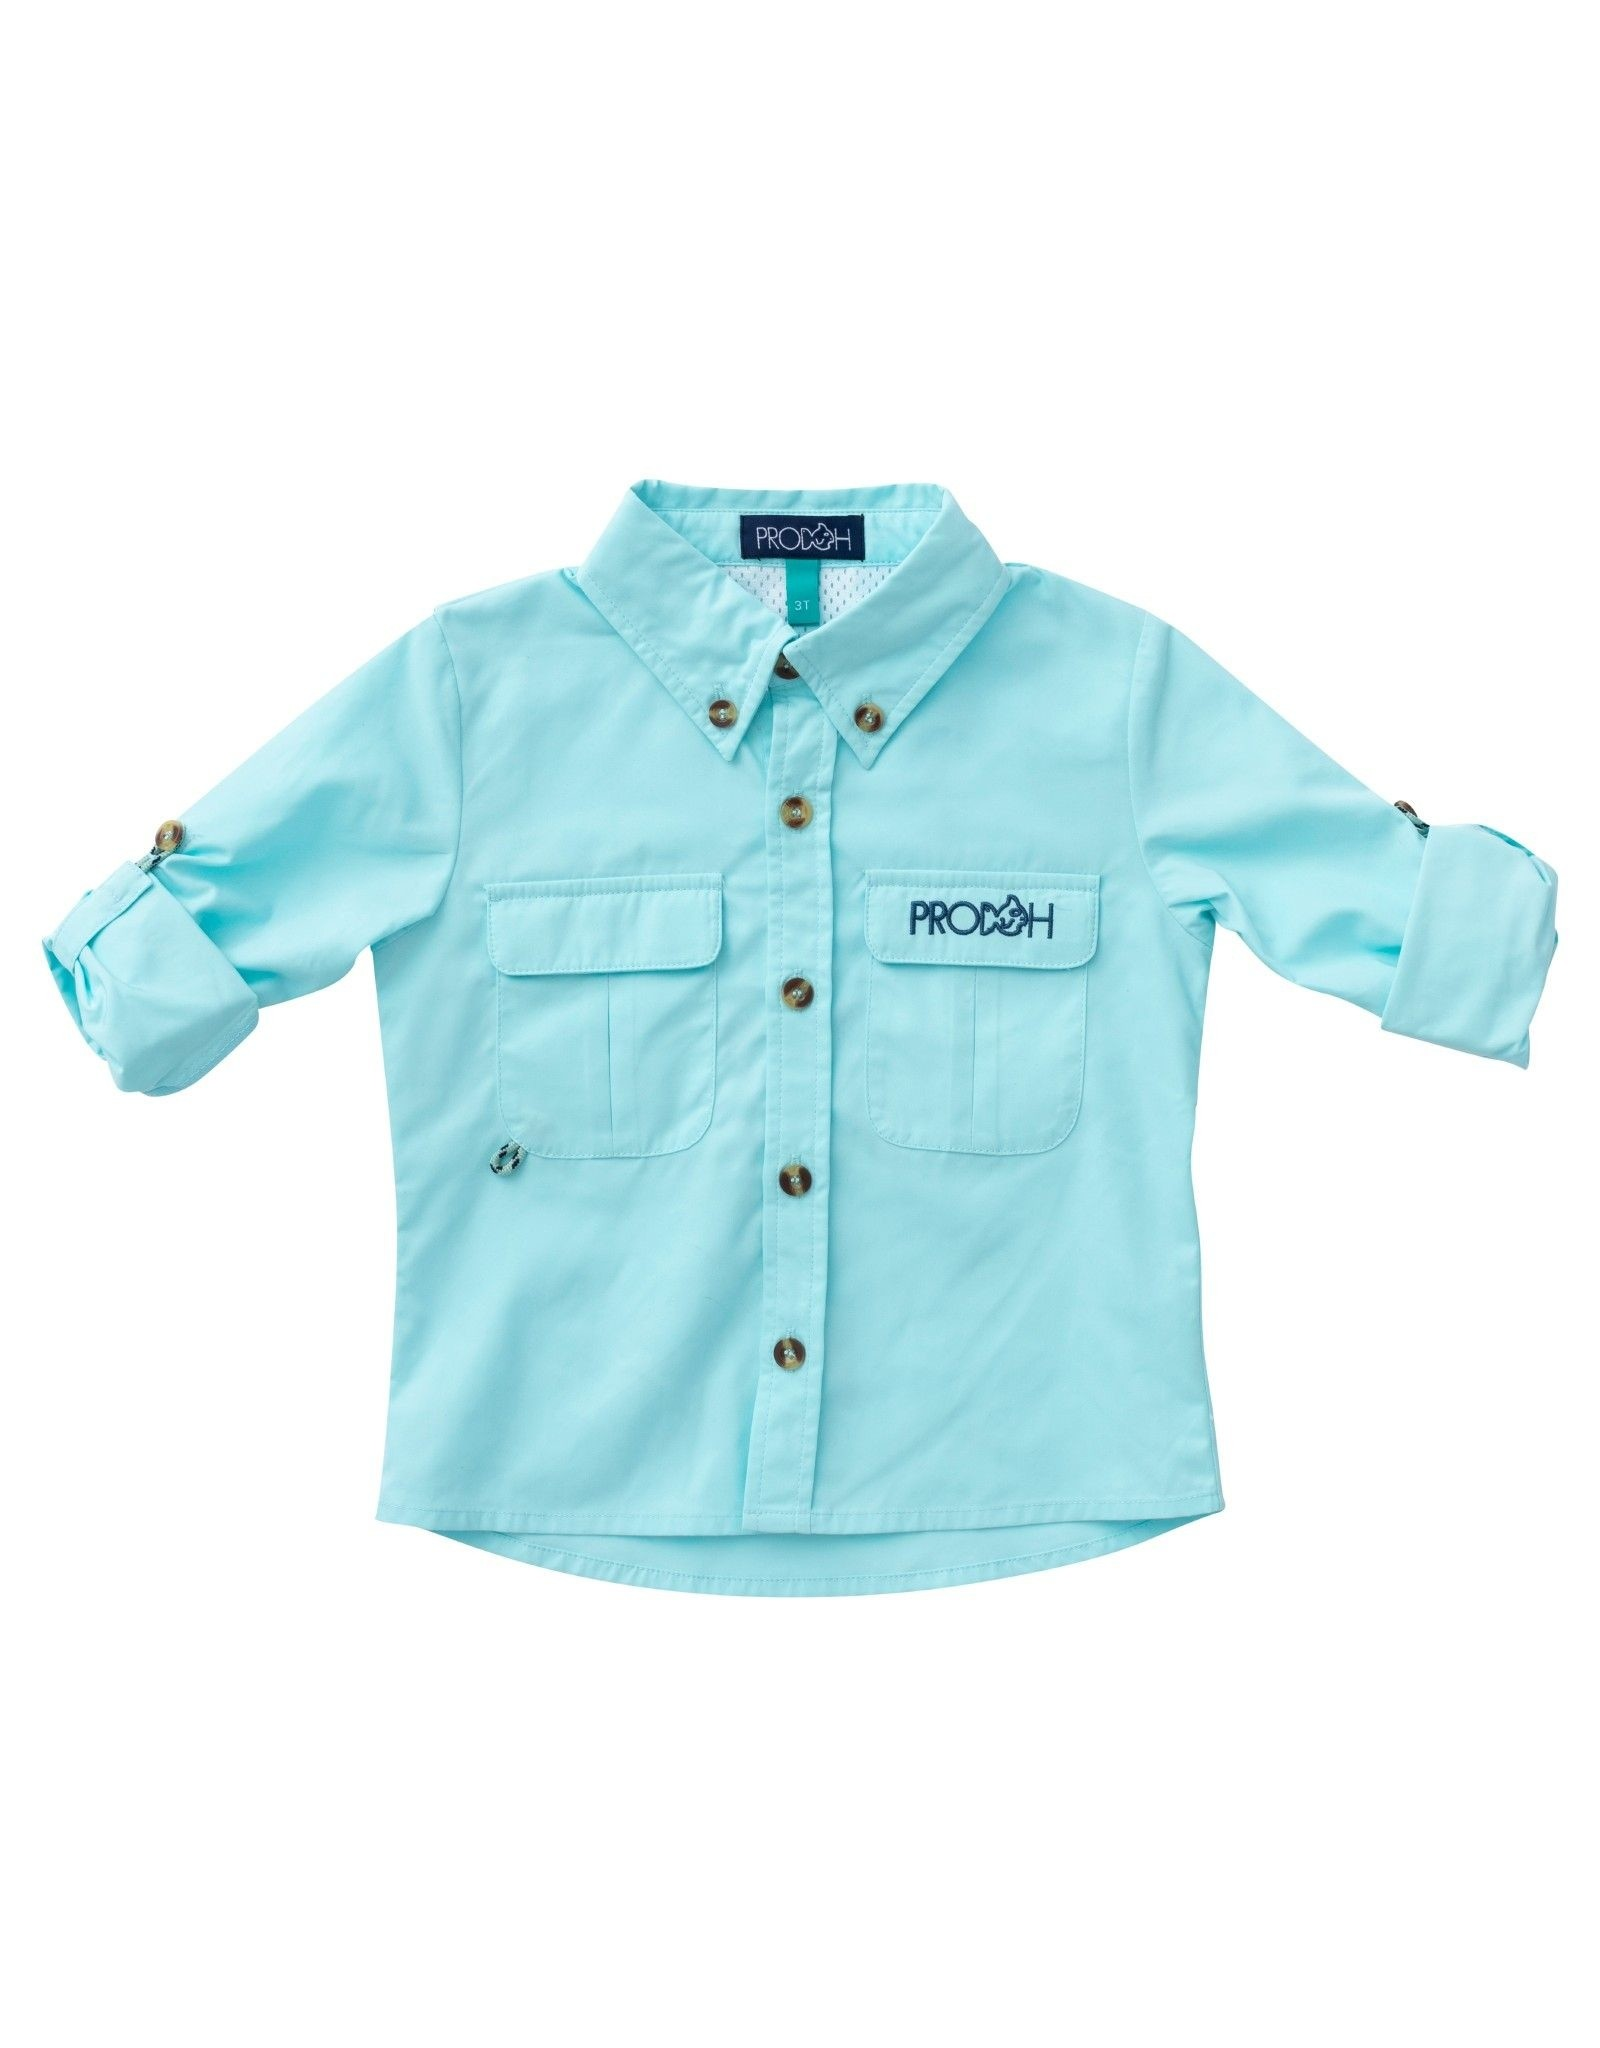 Prodoh Solid Vented Back Fishing Shirt- PREORDER